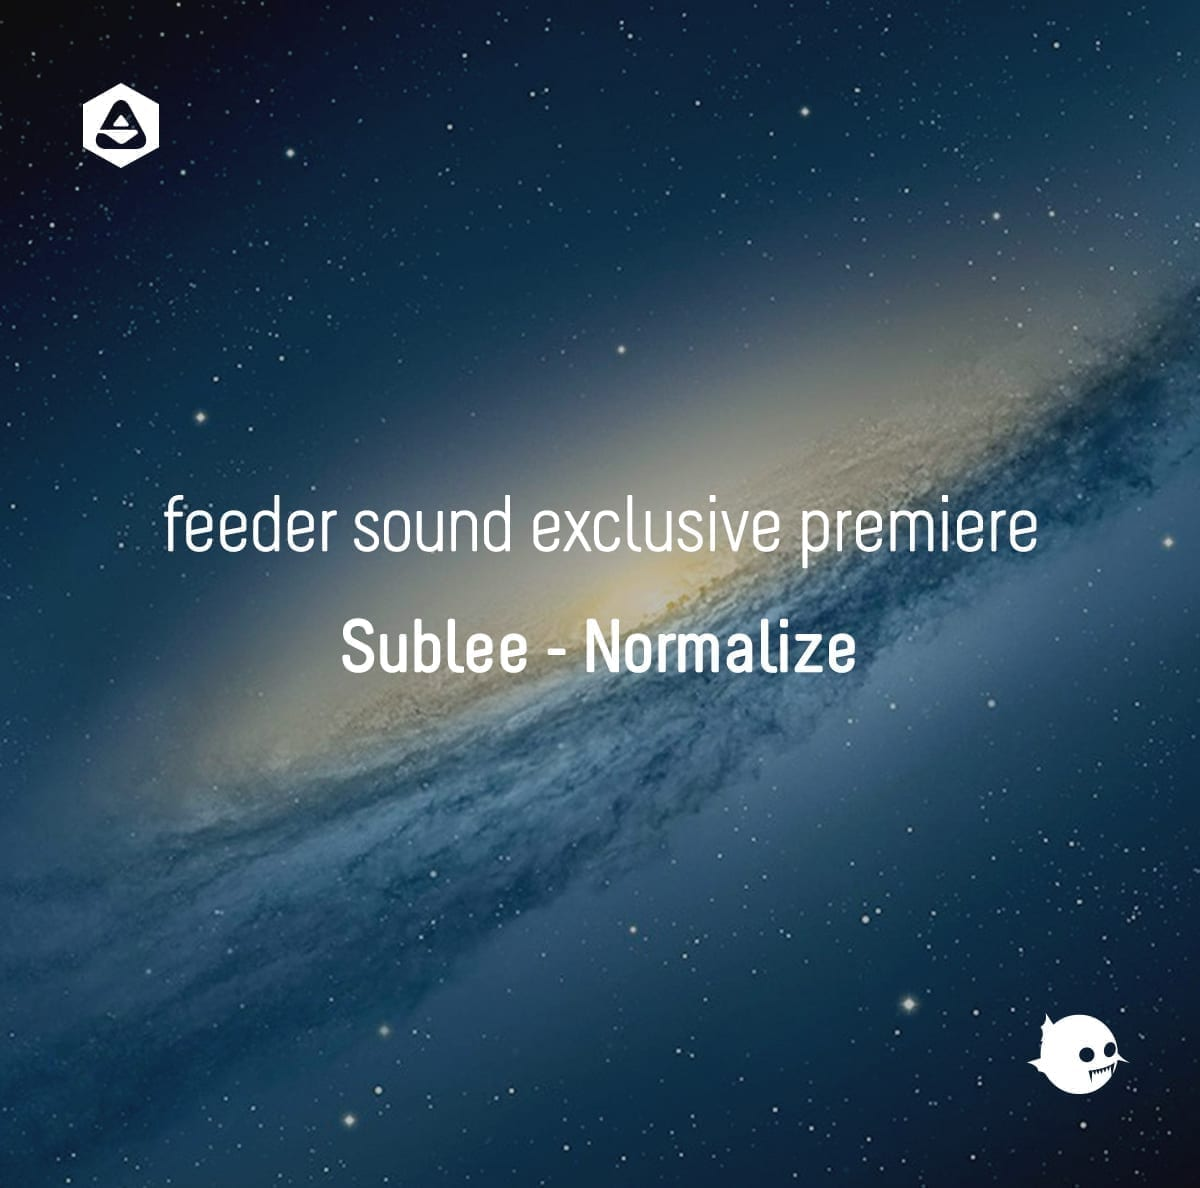 sublee - normalize 01